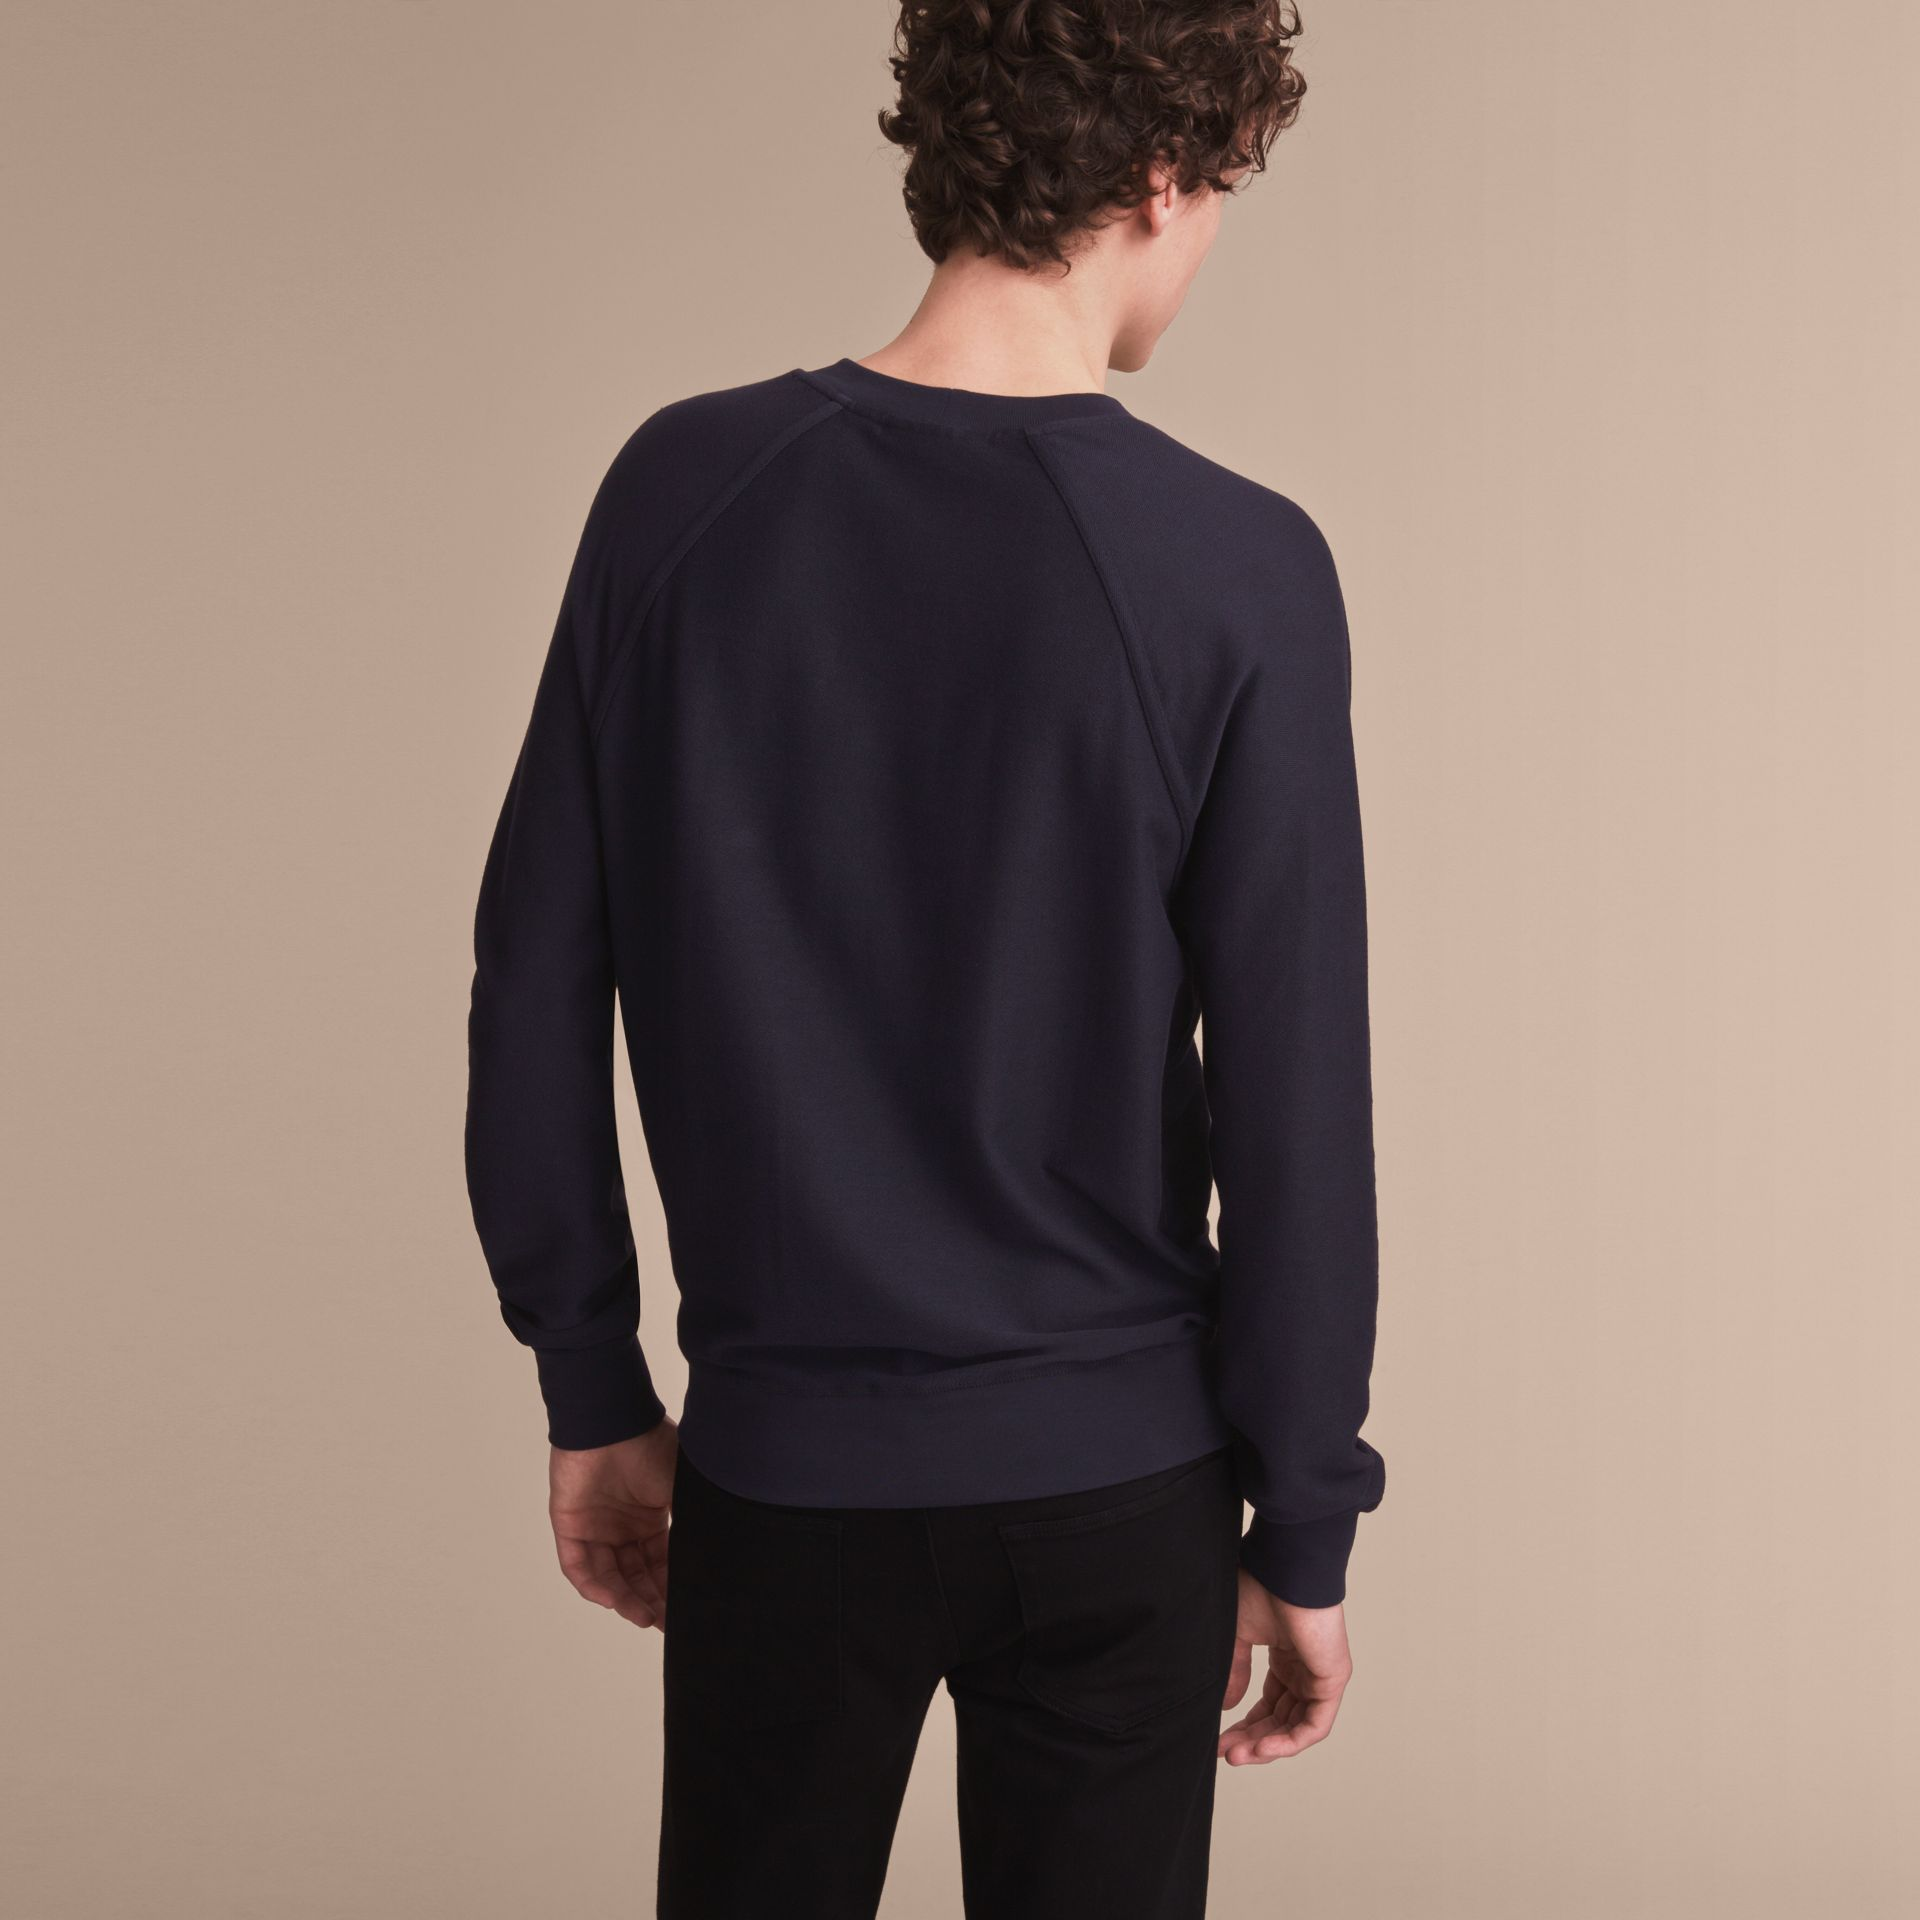 Embroidered Motif Cotton-blend Jersey Sweatshirt in Navy - Men | Burberry Australia - gallery image 3